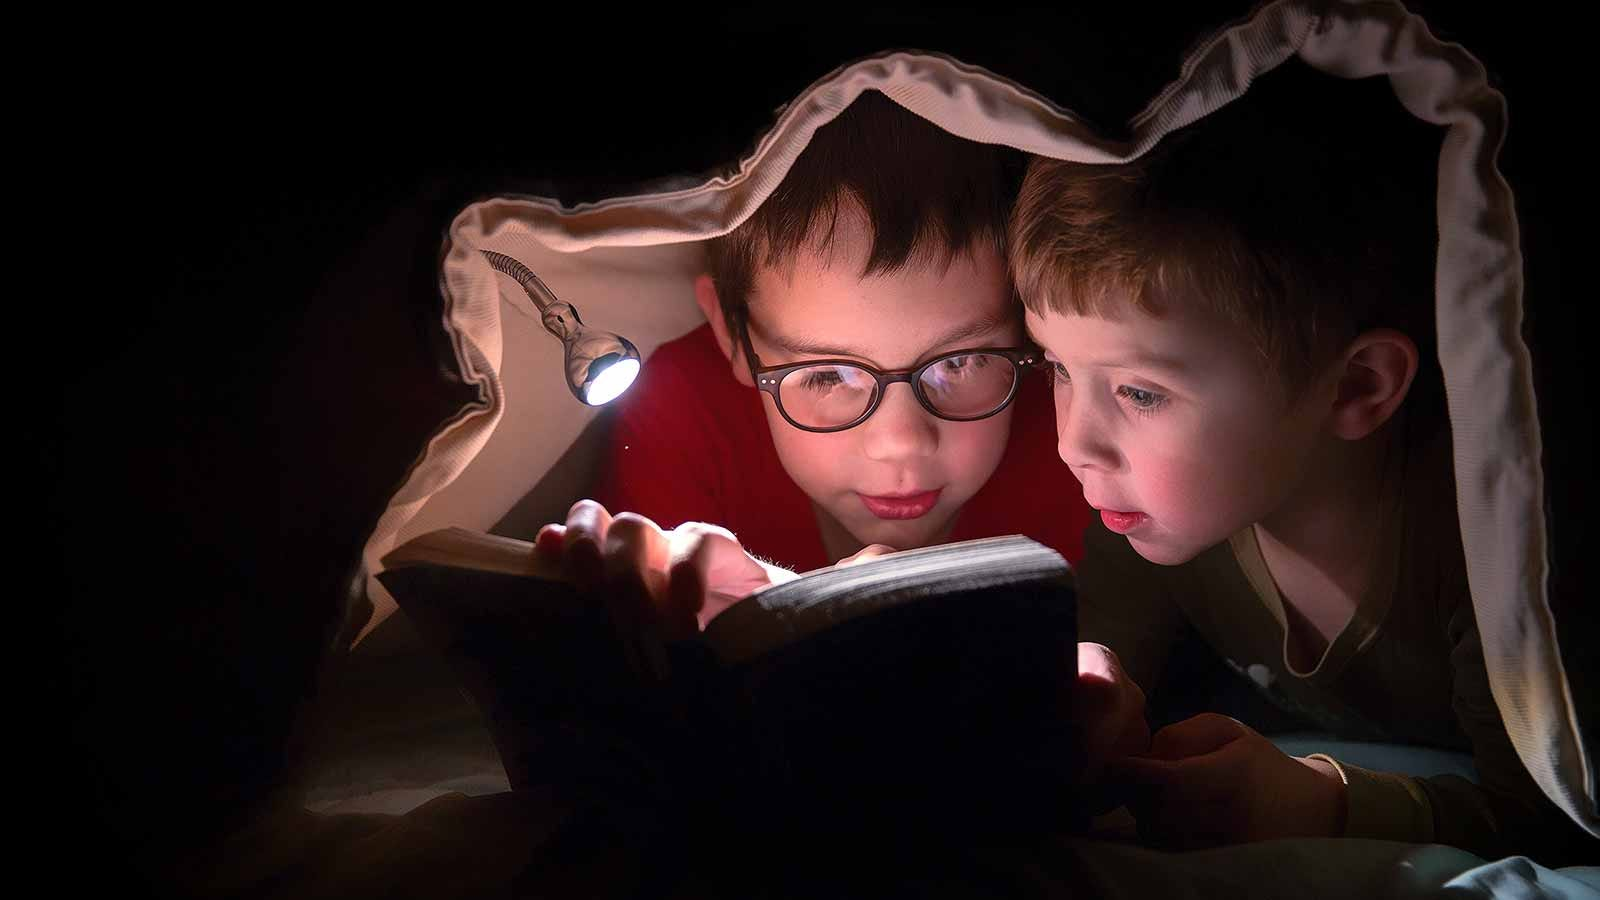 Two boys under a blanket reading a book by flashlight.